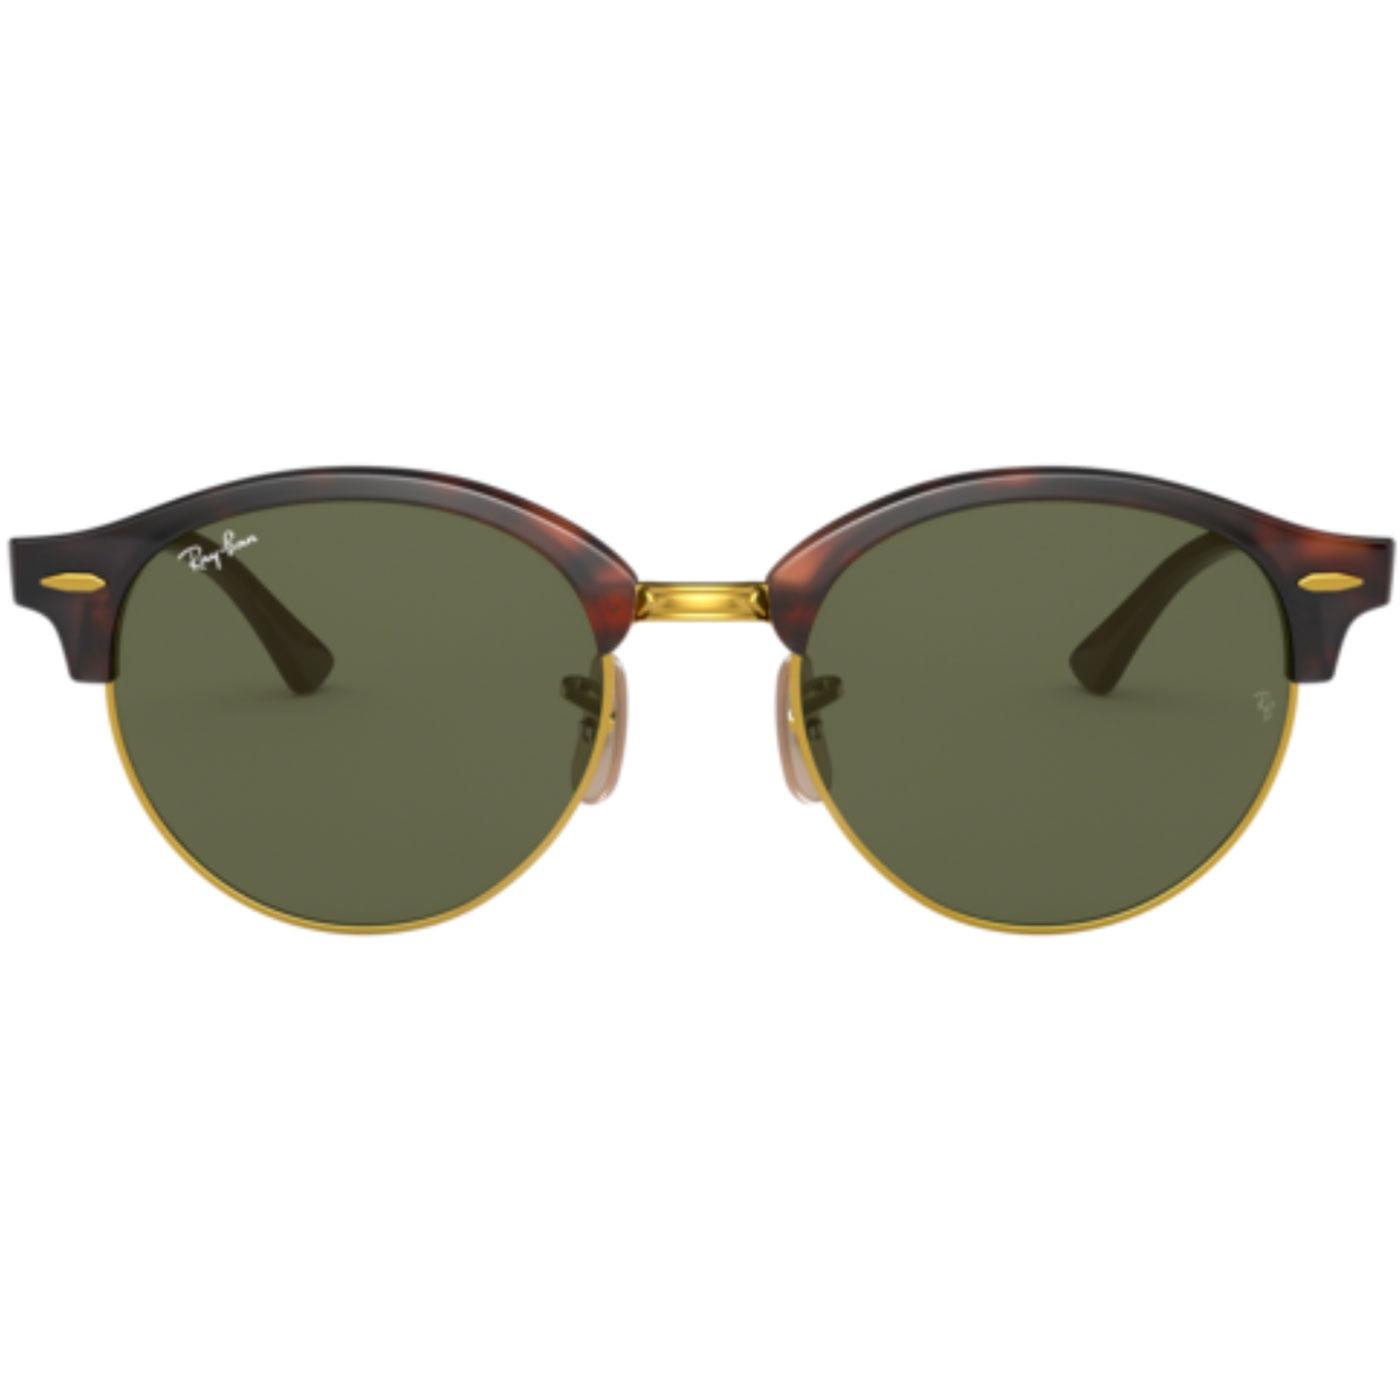 Clubround RAY-BAN Retro Mod Sixties Sunglasses